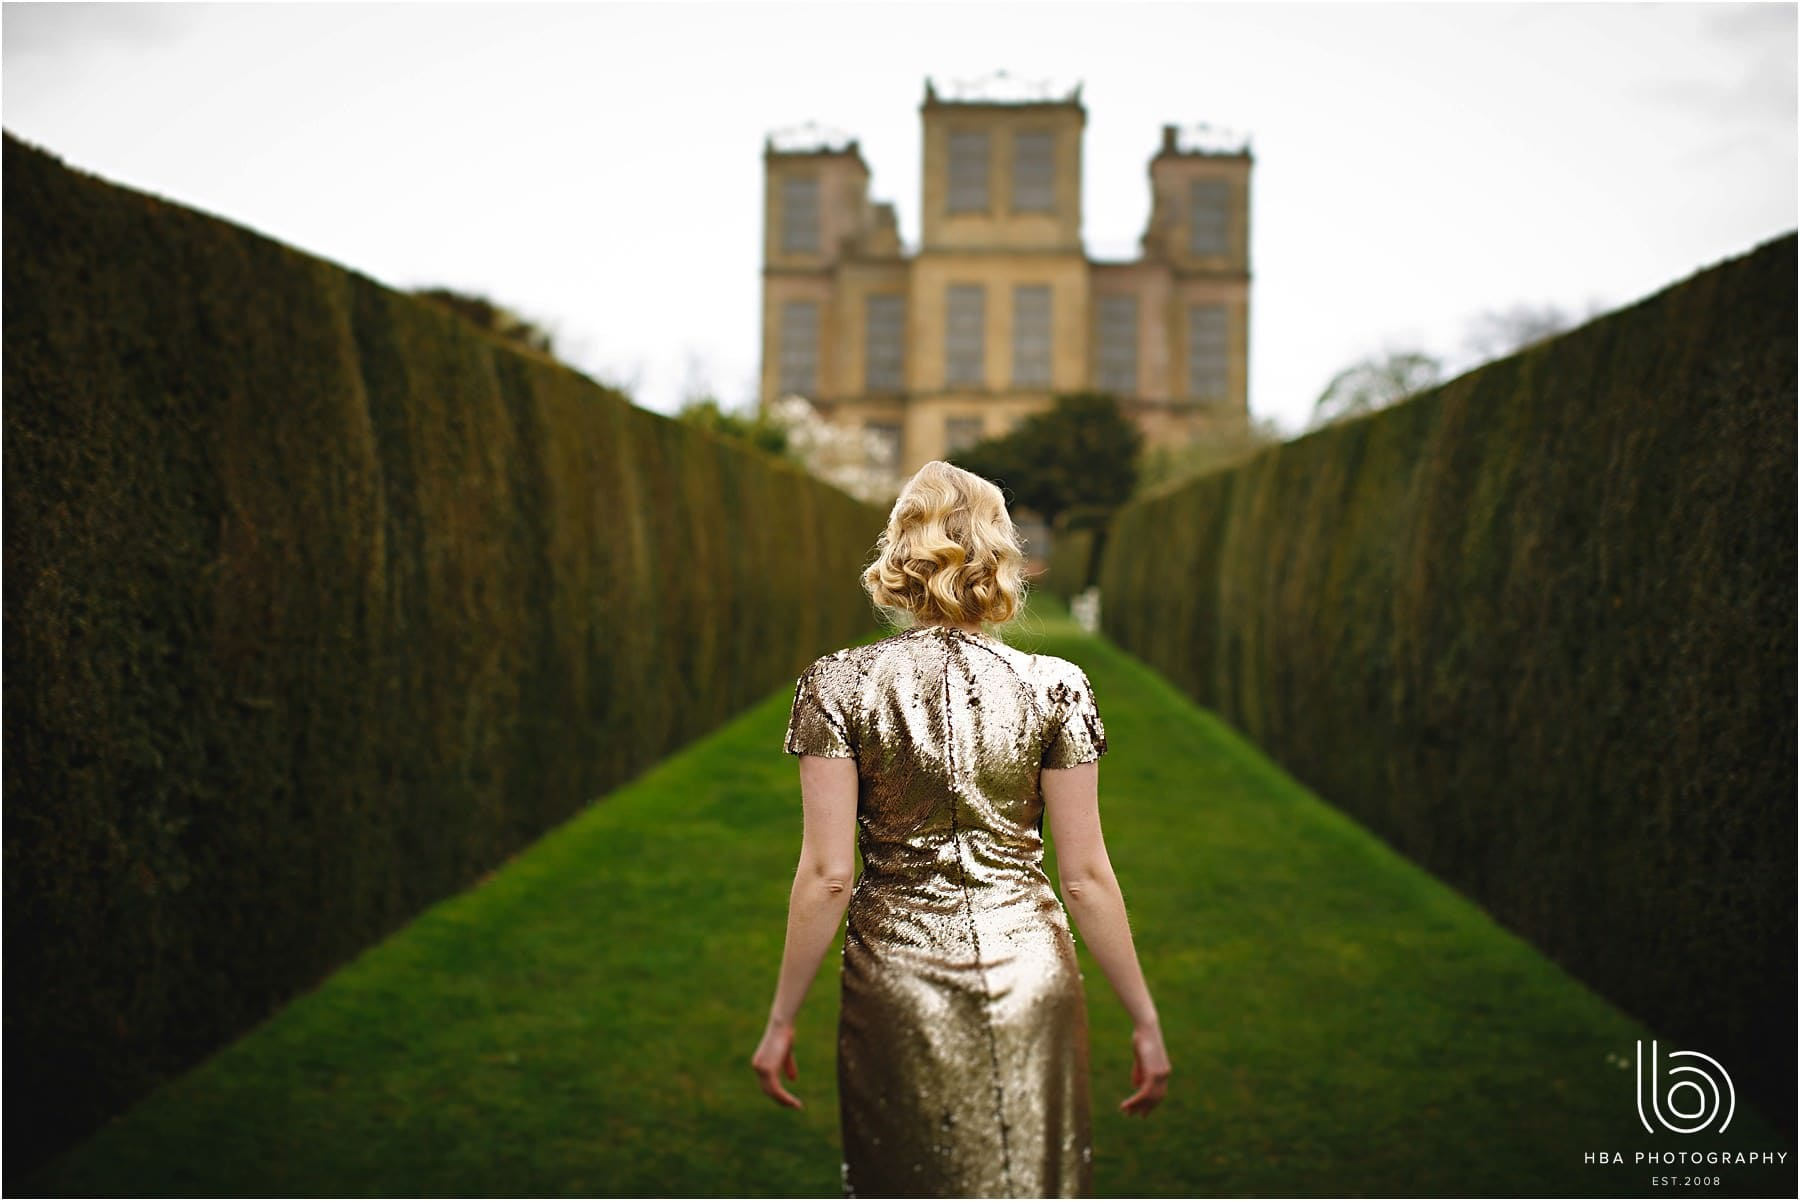 the bride in a gold wedding dress walking towards Hardwick Hall